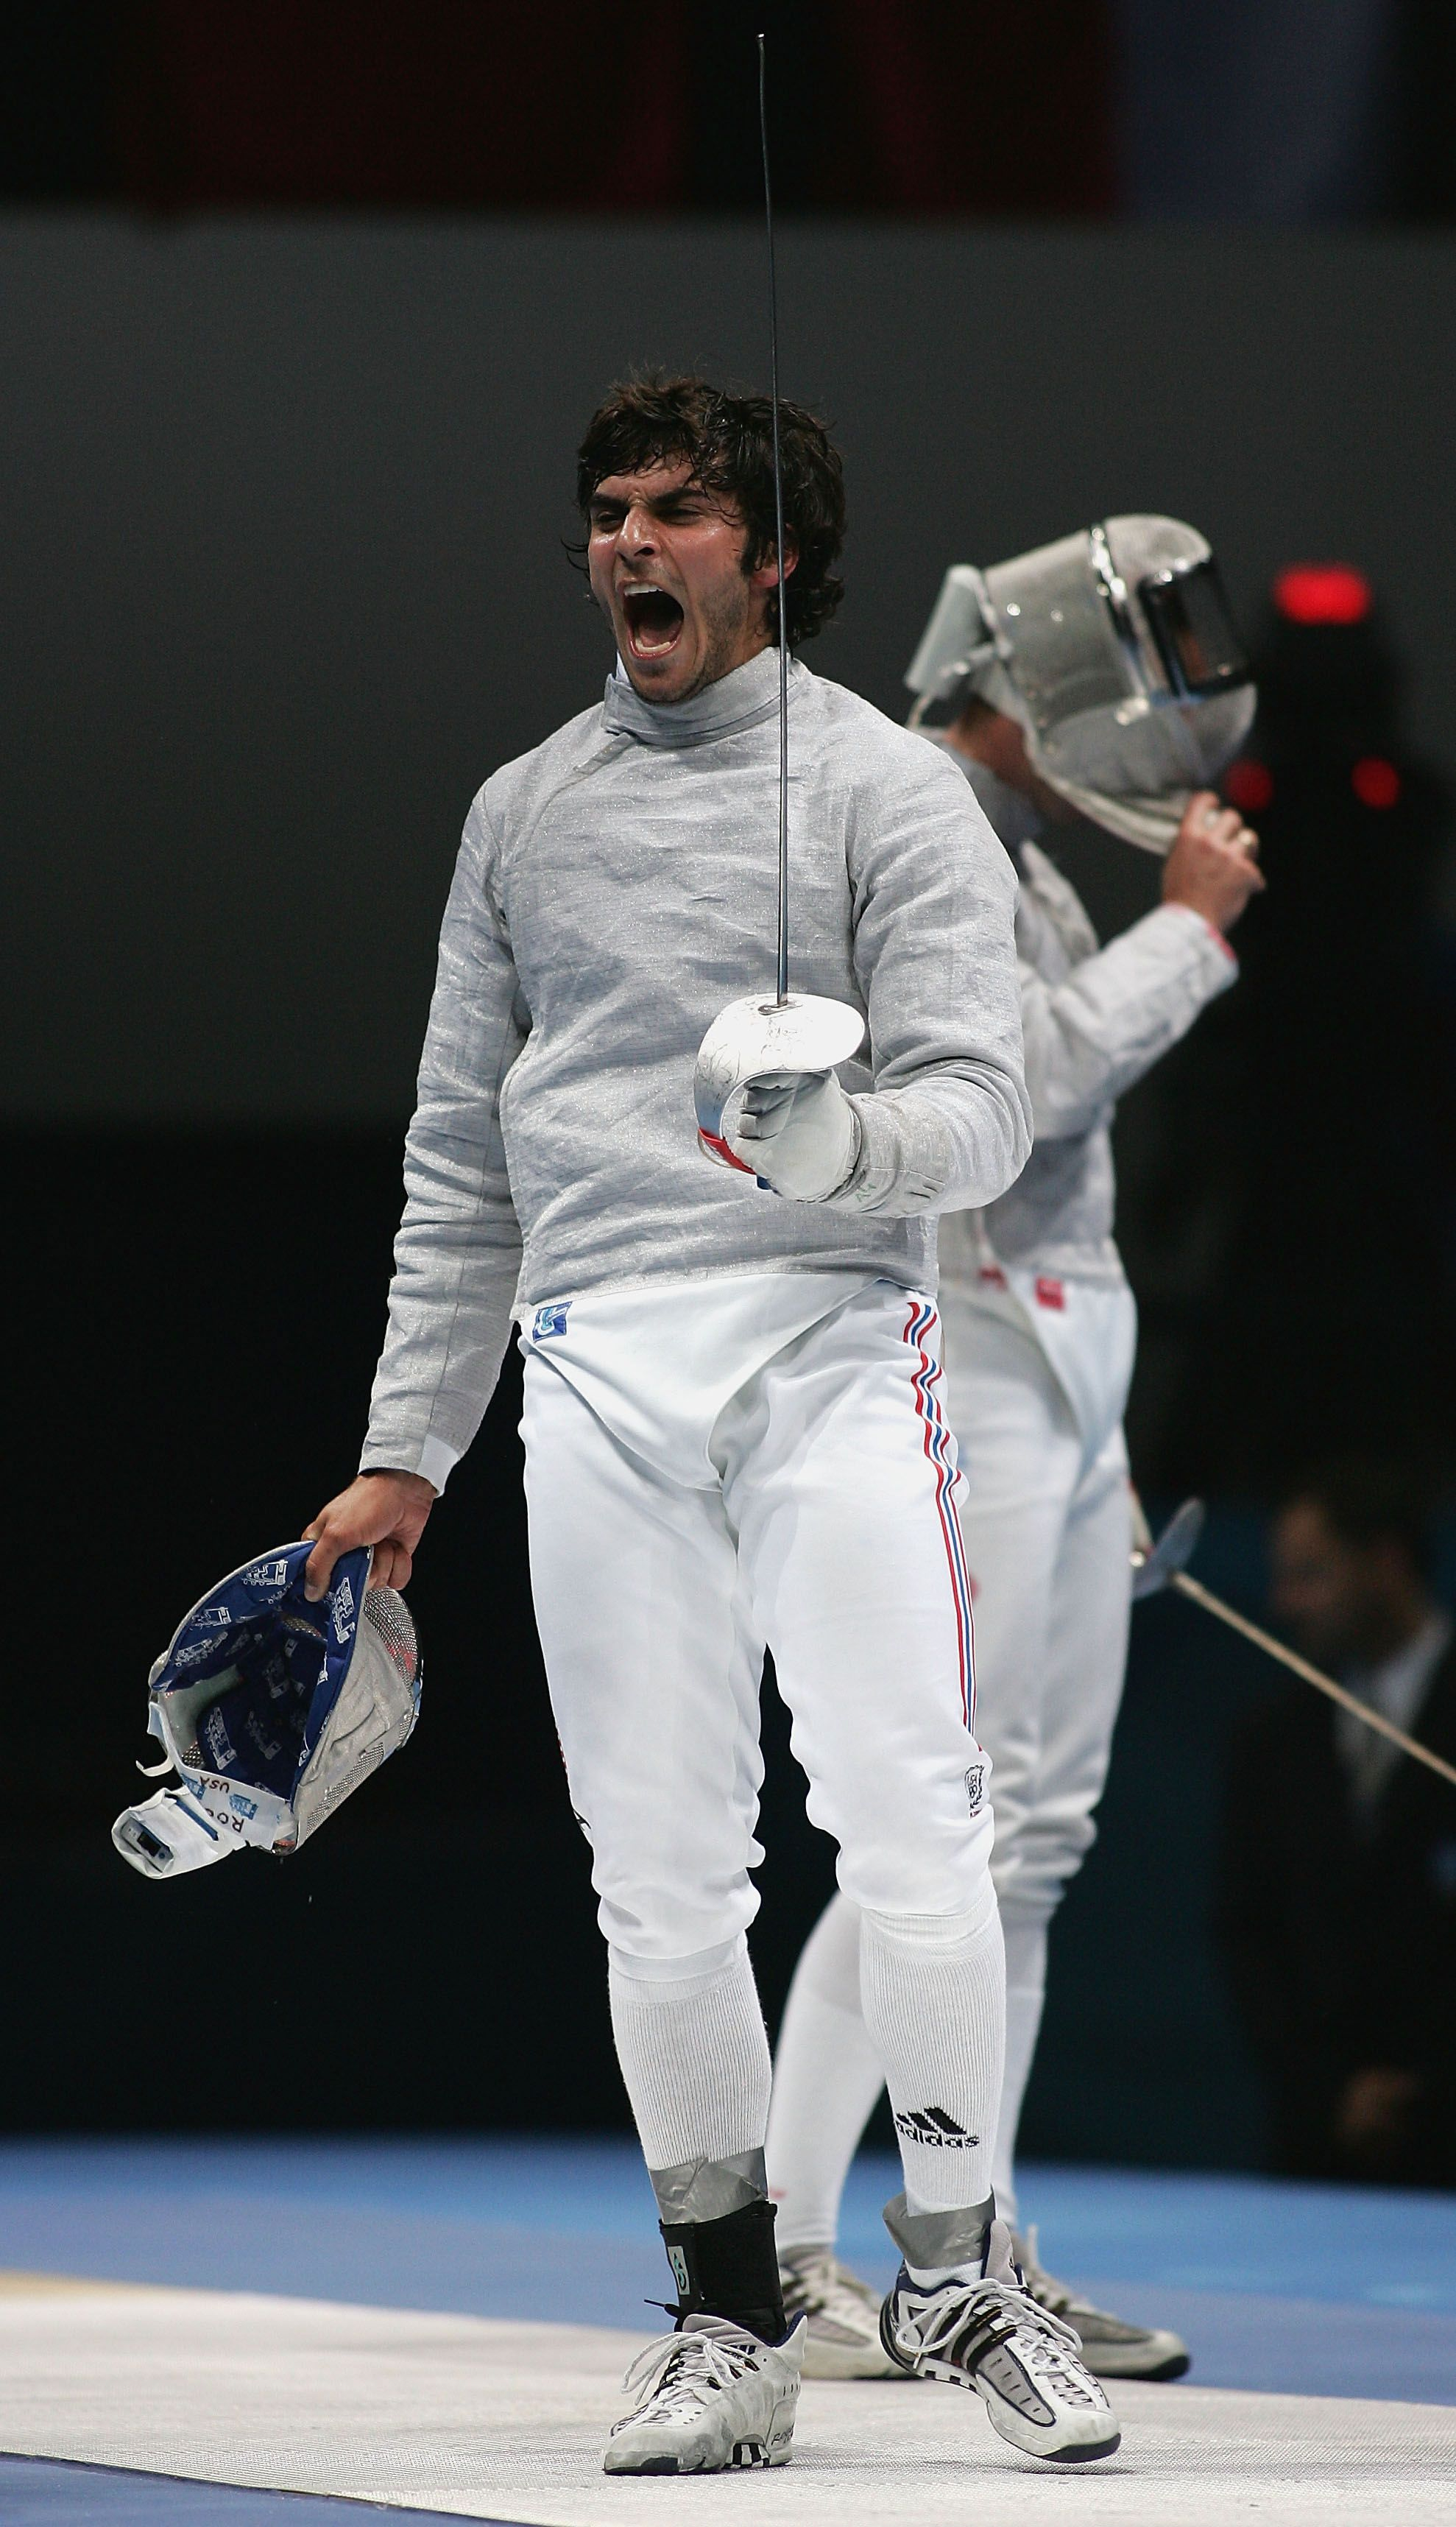 Jason Rogers sexual dysfunction athlete fencer